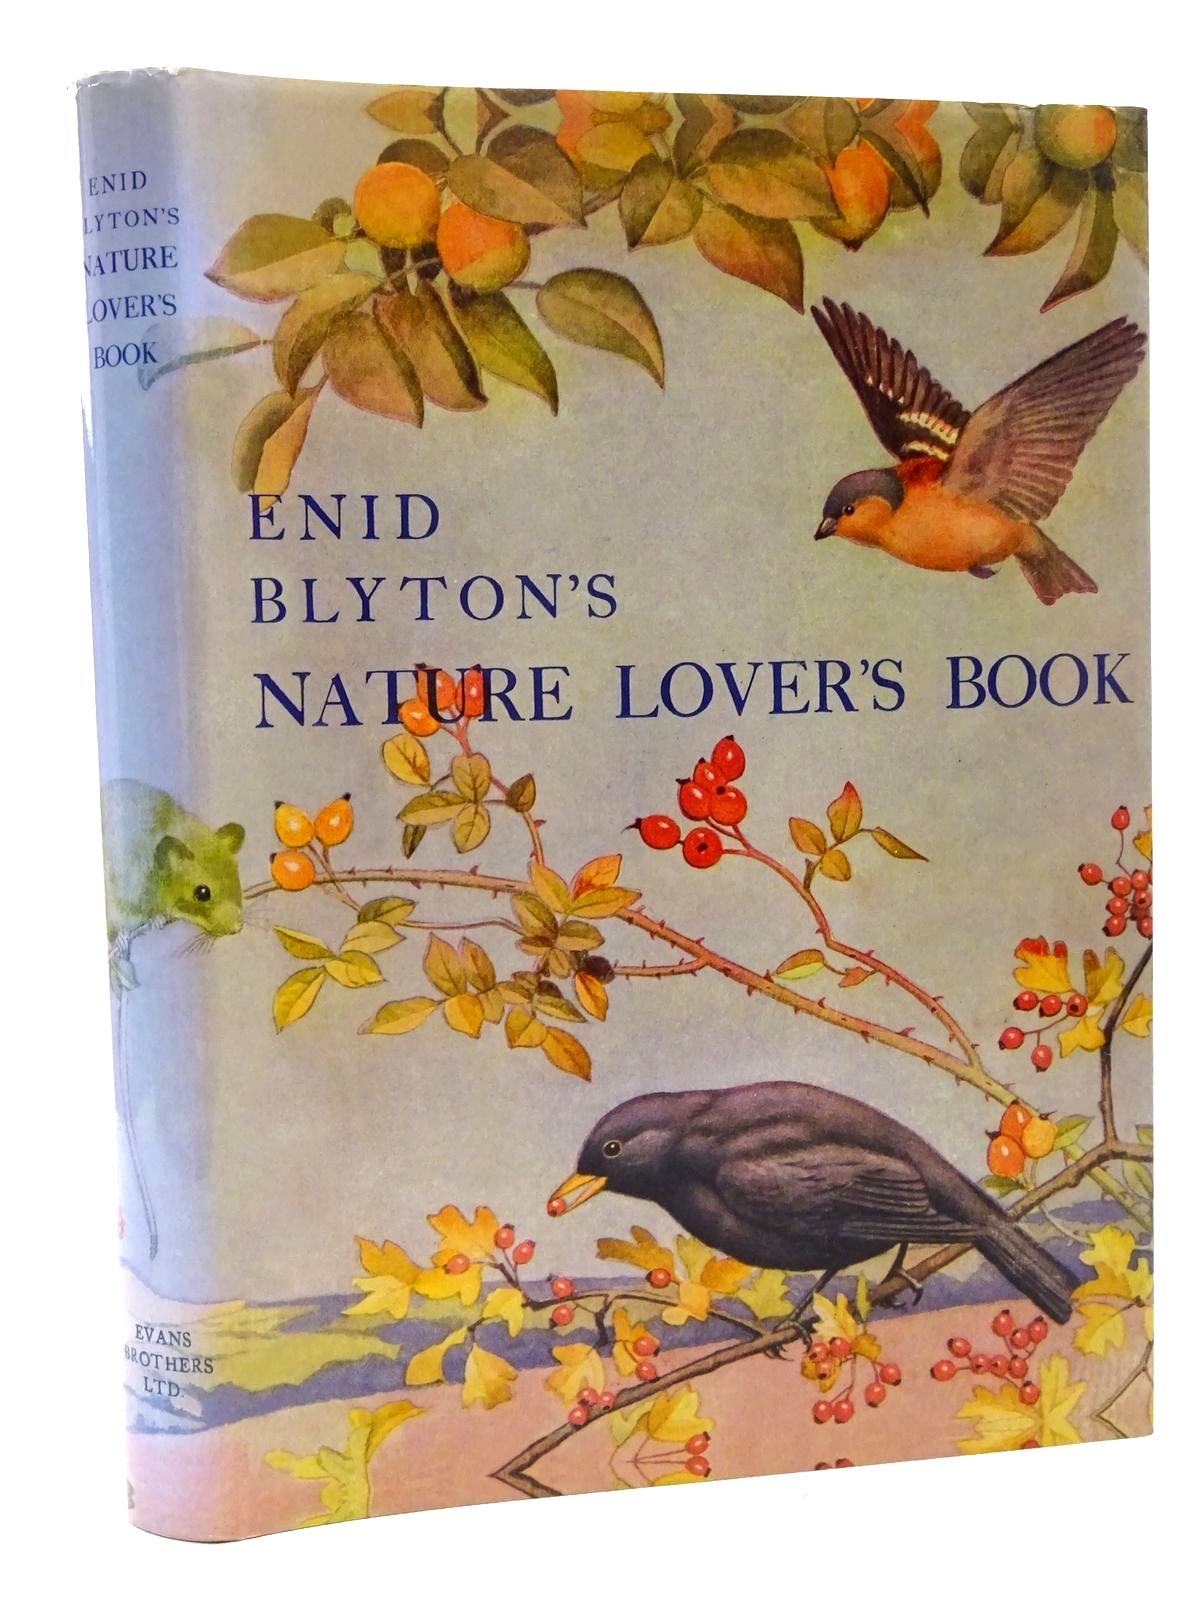 Photo of ENID BLYTON'S NATURE LOVER'S BOOK written by Blyton, Enid illustrated by Hopking, Noel published by Evans Brothers Limited (STOCK CODE: 1317240)  for sale by Stella & Rose's Books